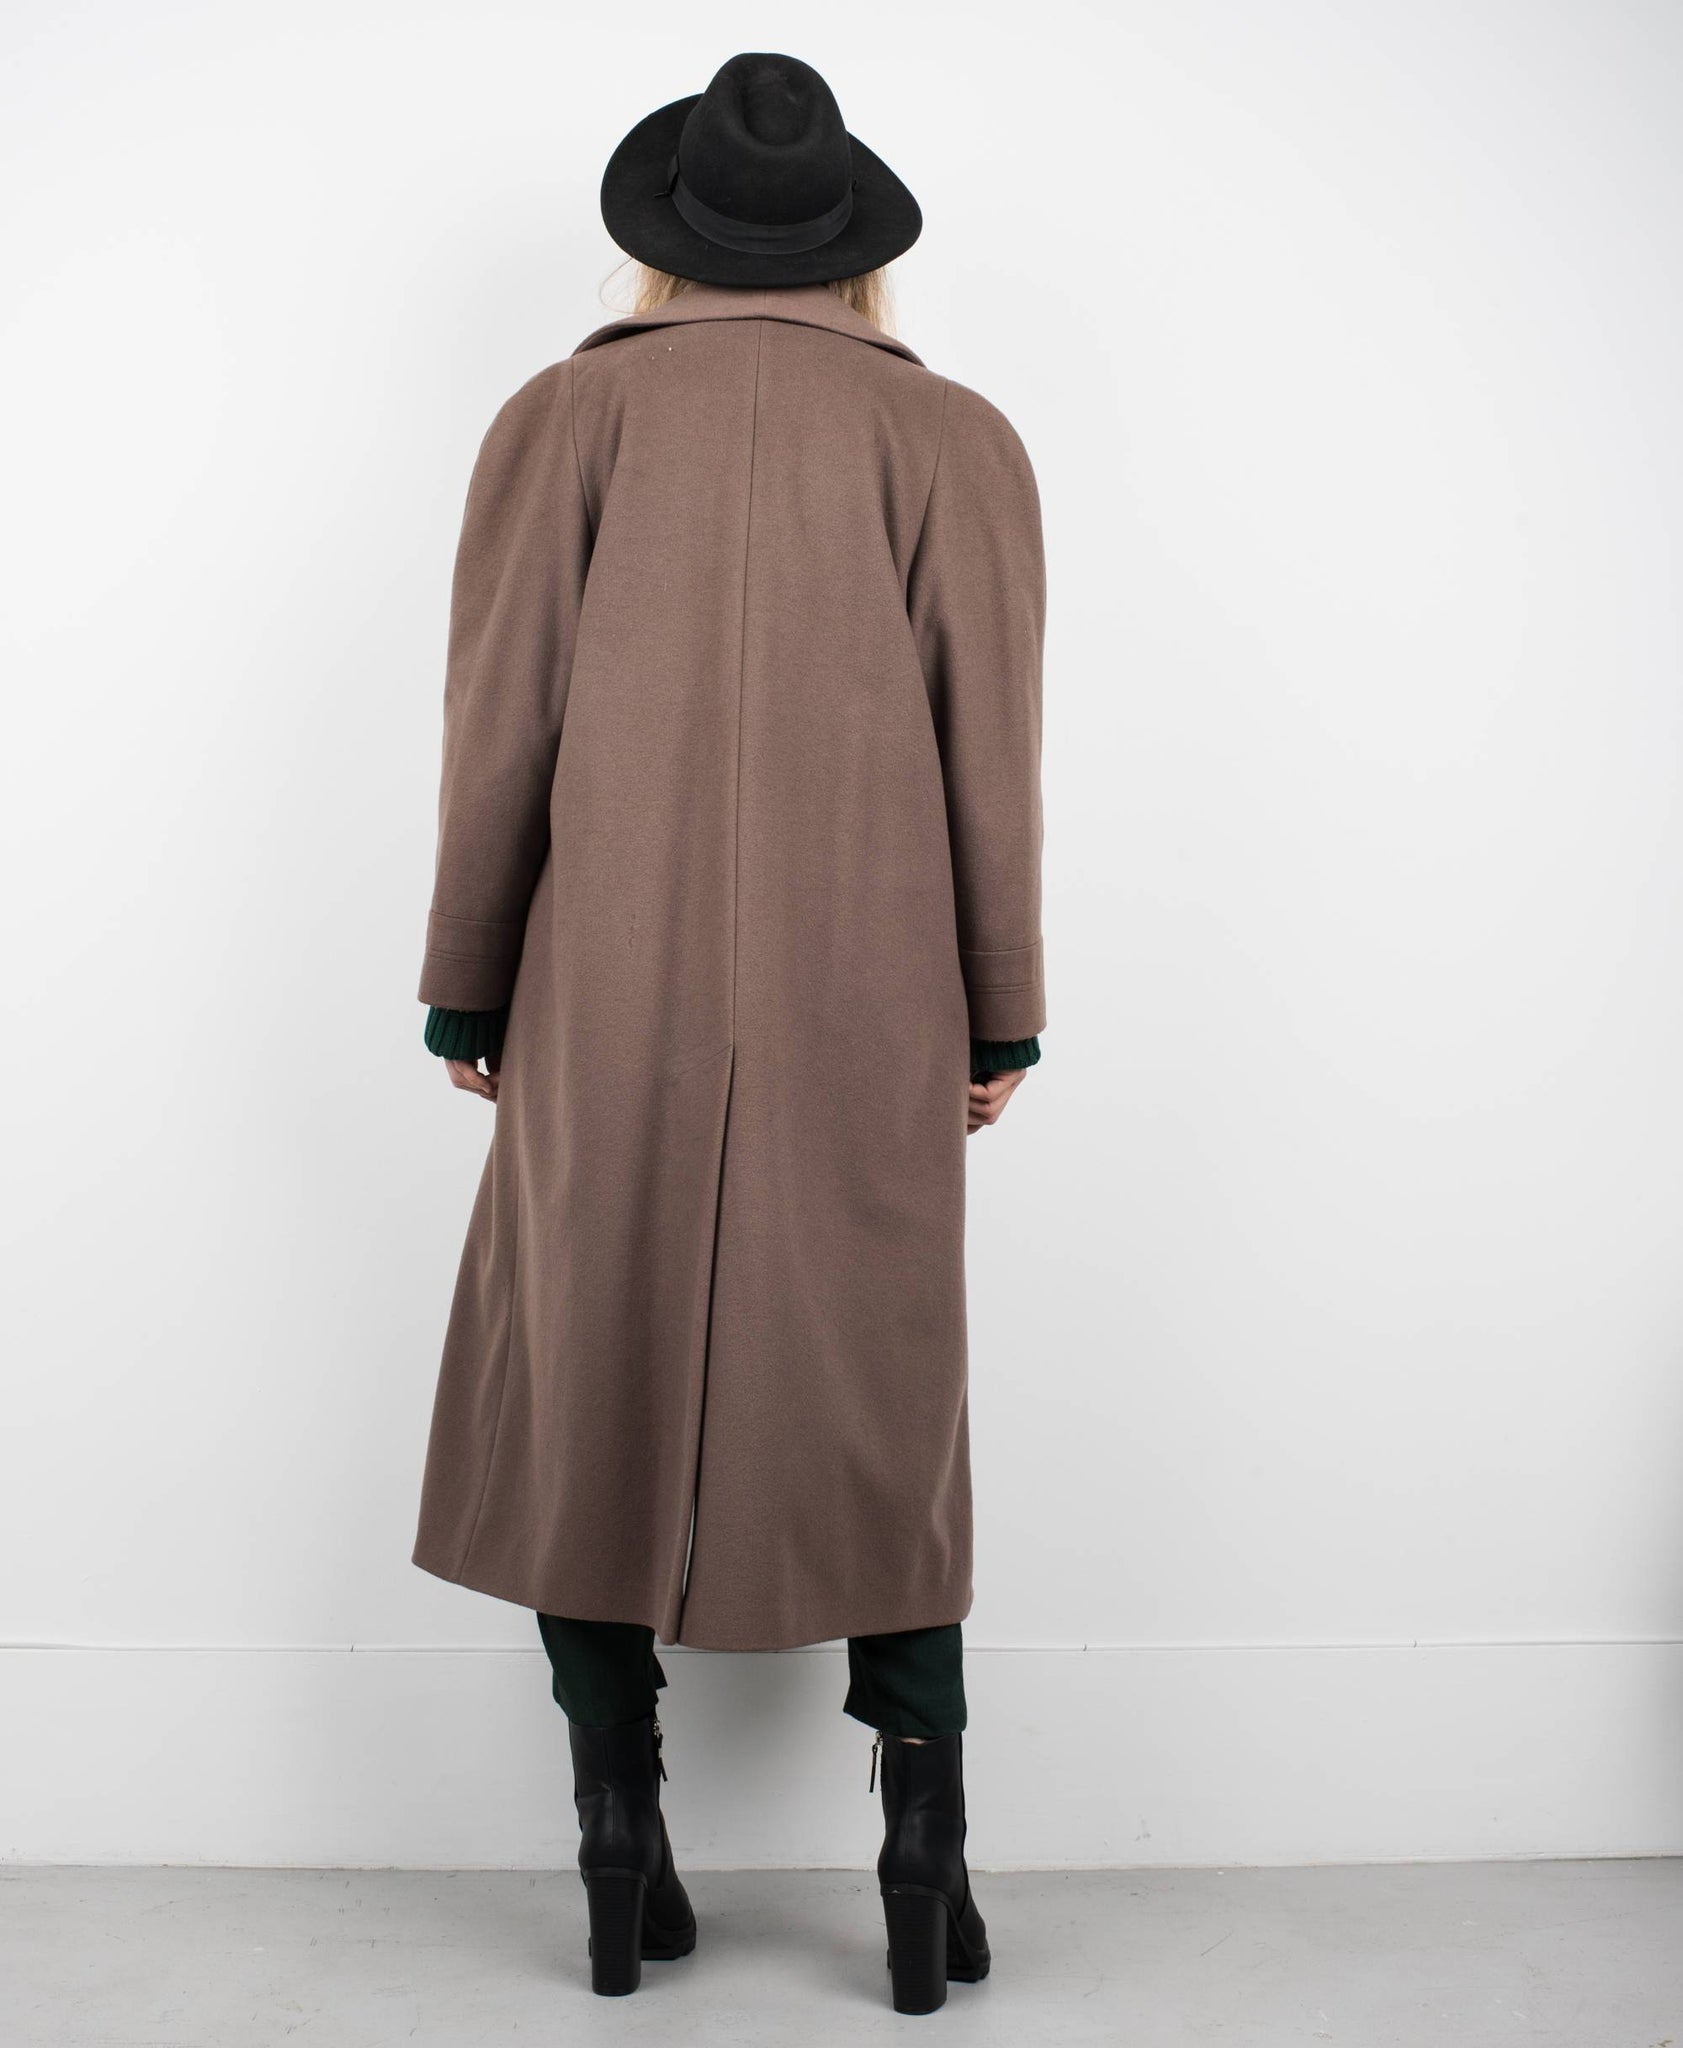 Vintage Cocoa Wool Coat / S/M - Closed Caption